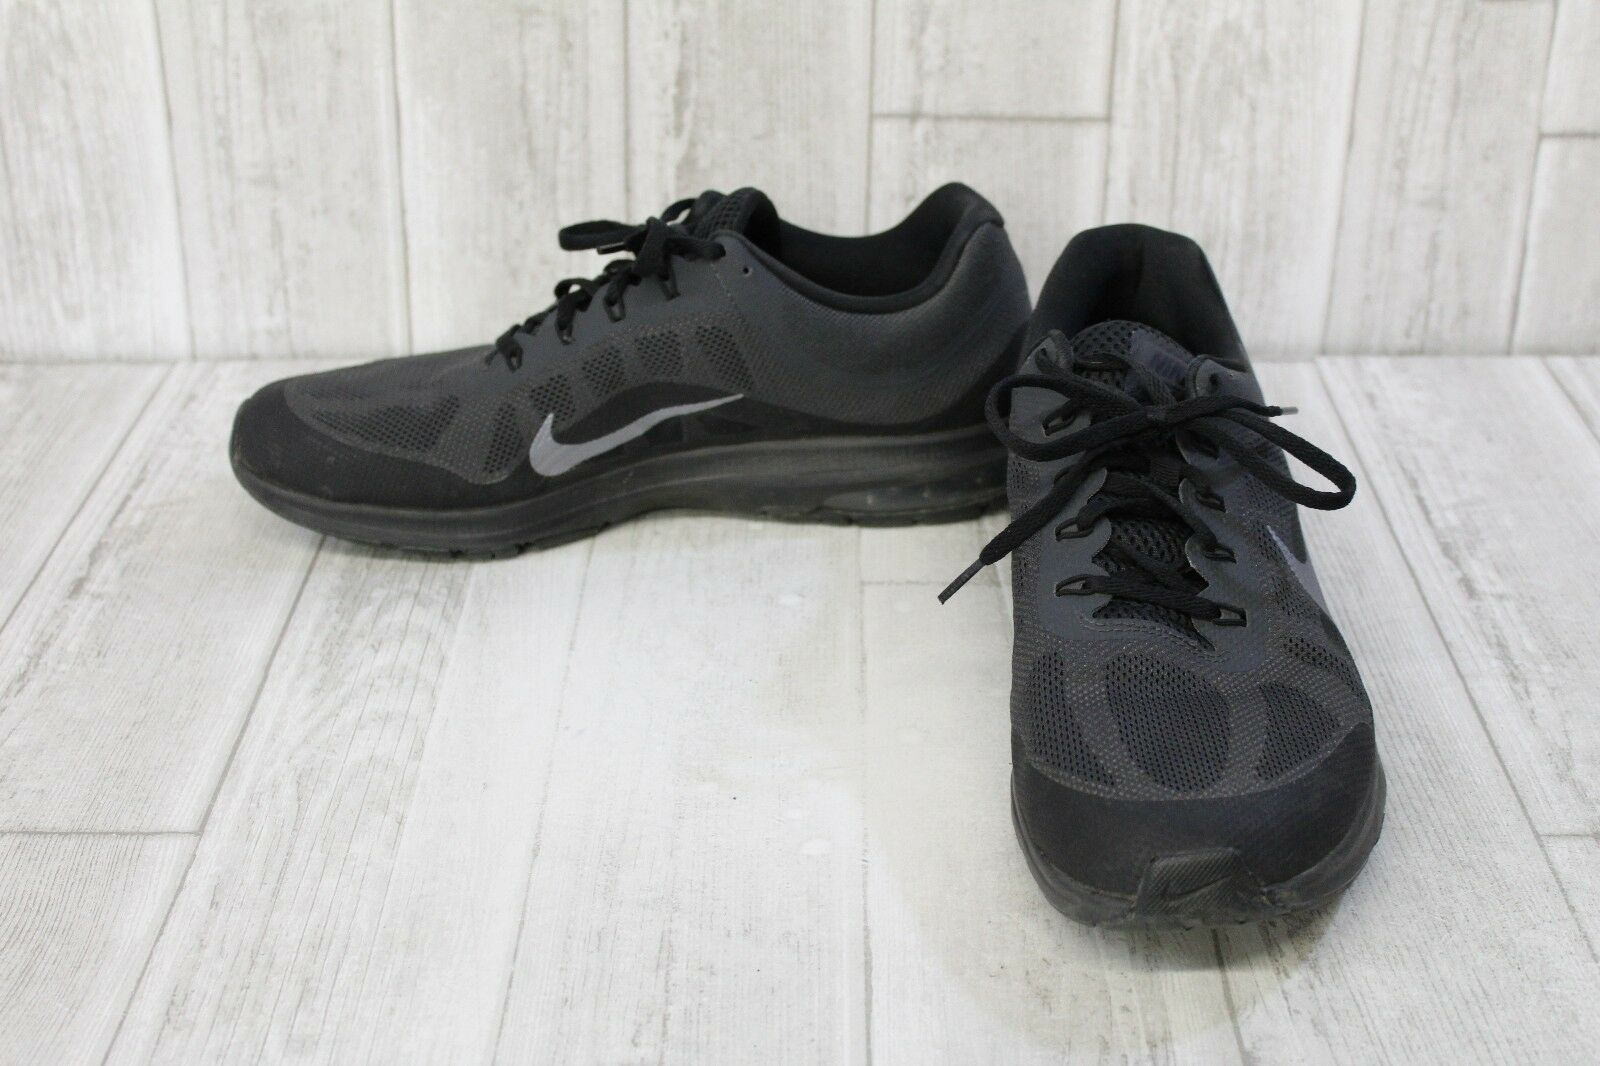 Nike Men's Air Max Dynasty 2 Running Shoe - Comfortable Comfortable and good-looking